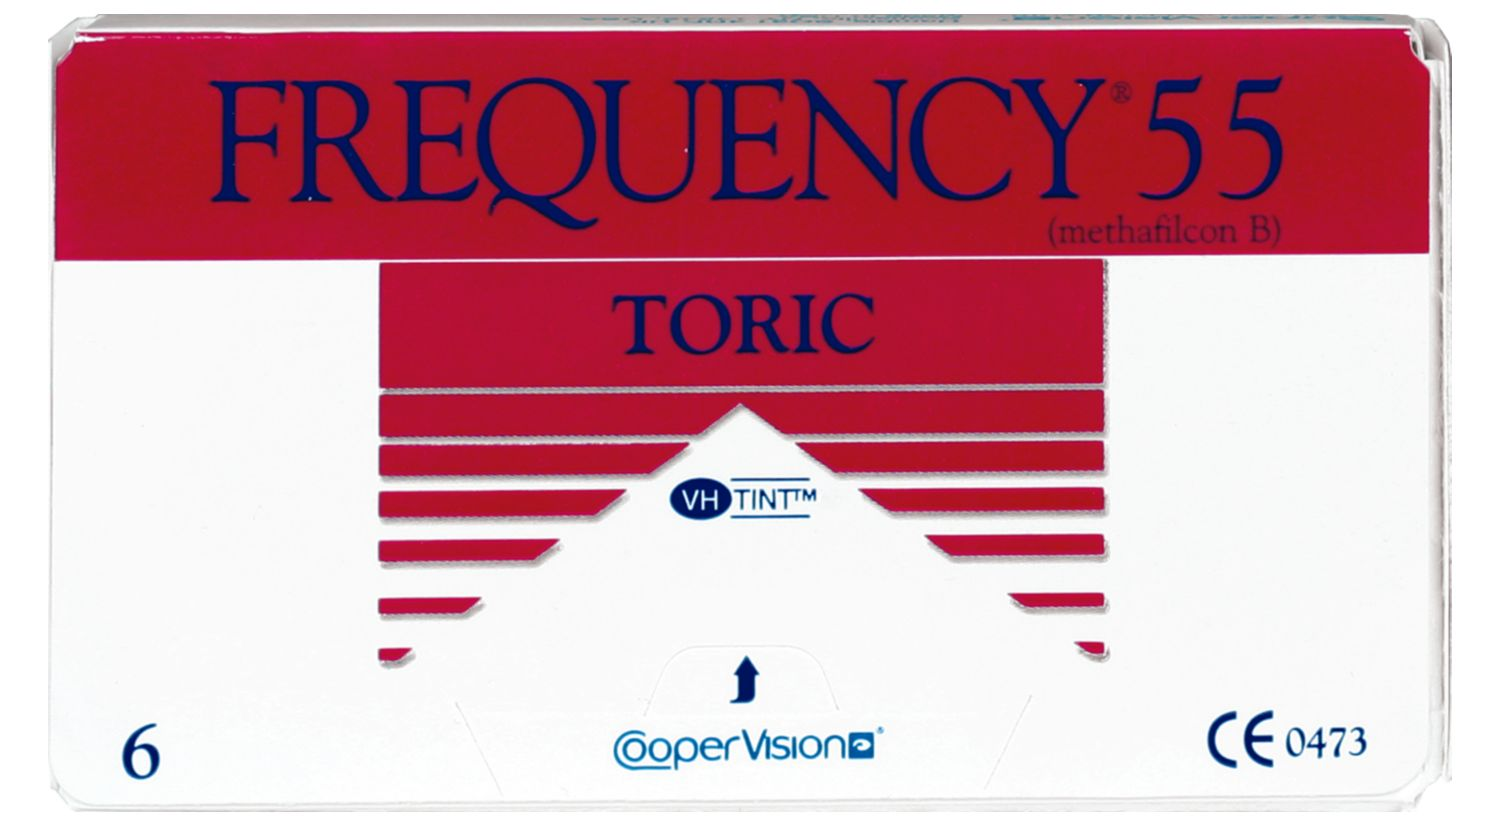 Frequency 55 Toric XR